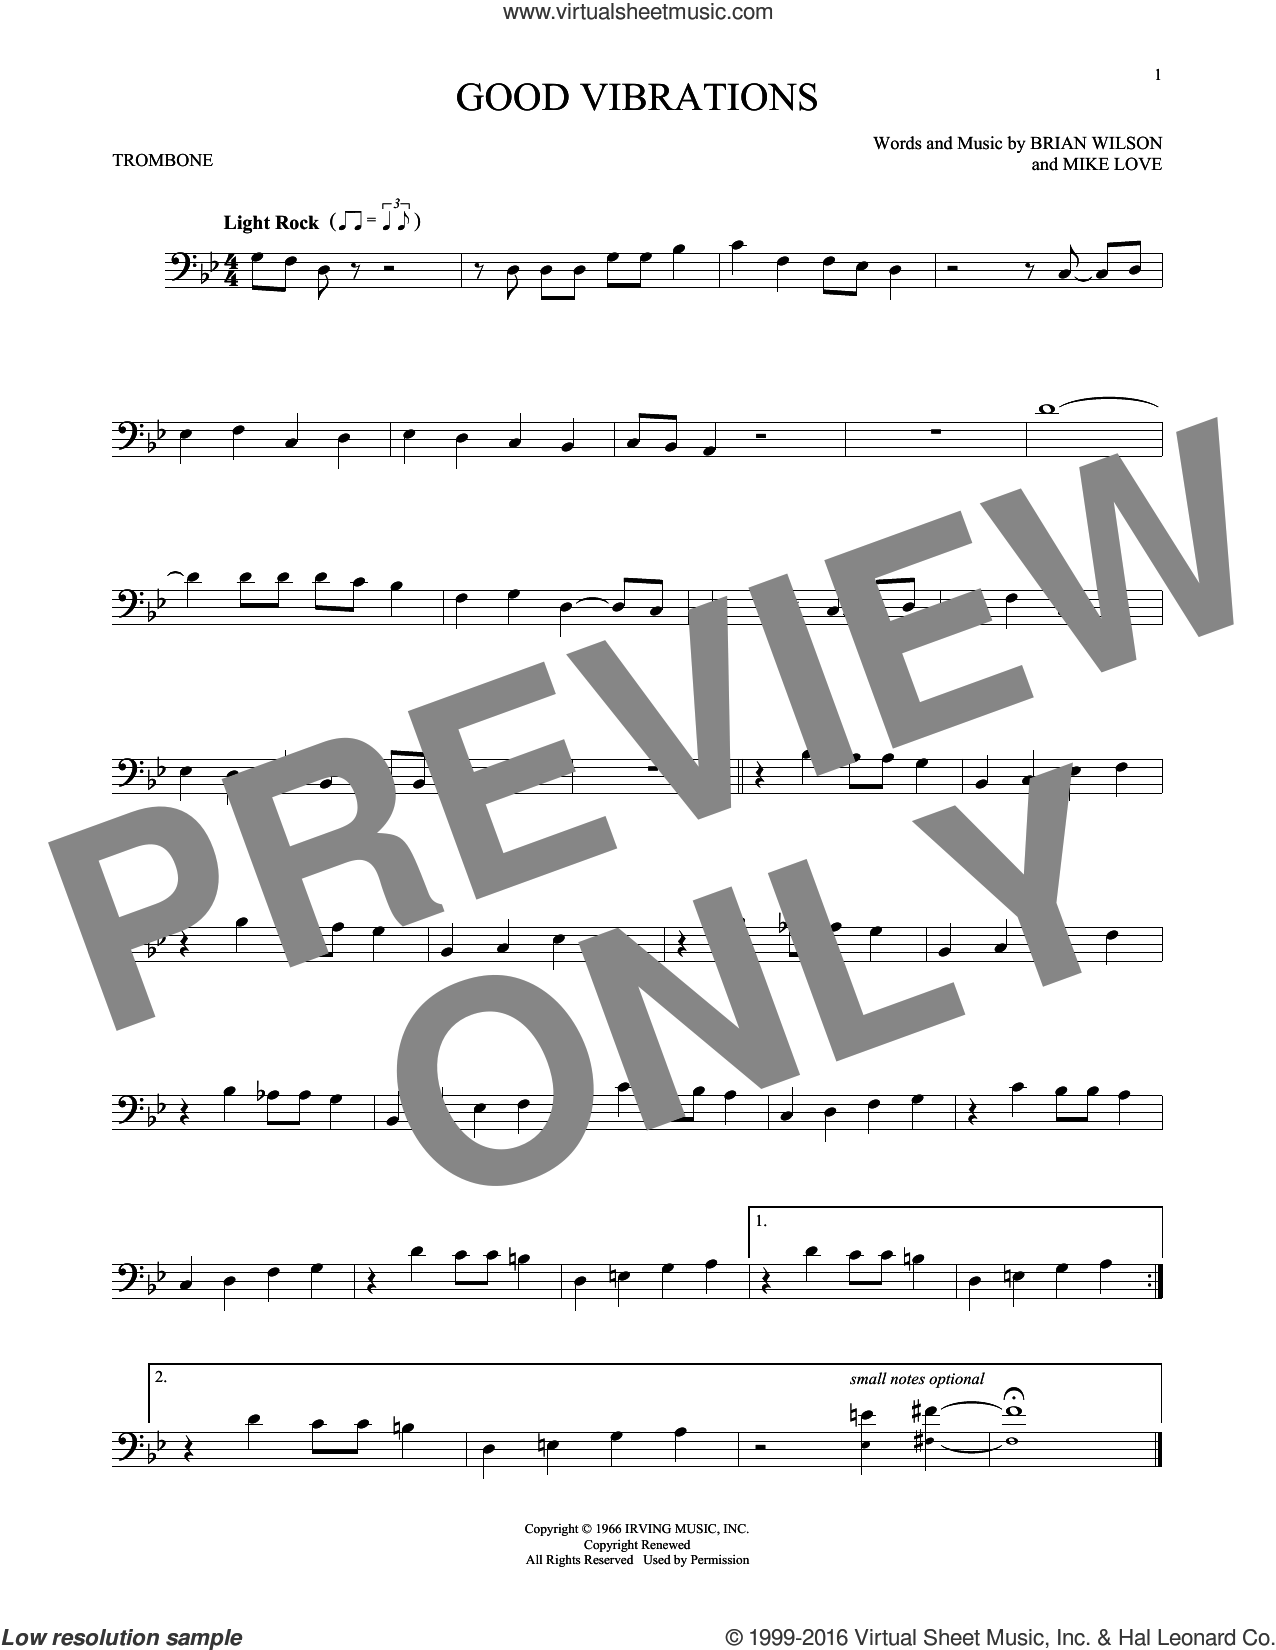 Good Vibrations sheet music for trombone solo by The Beach Boys, Brian Wilson and Mike Love, intermediate skill level